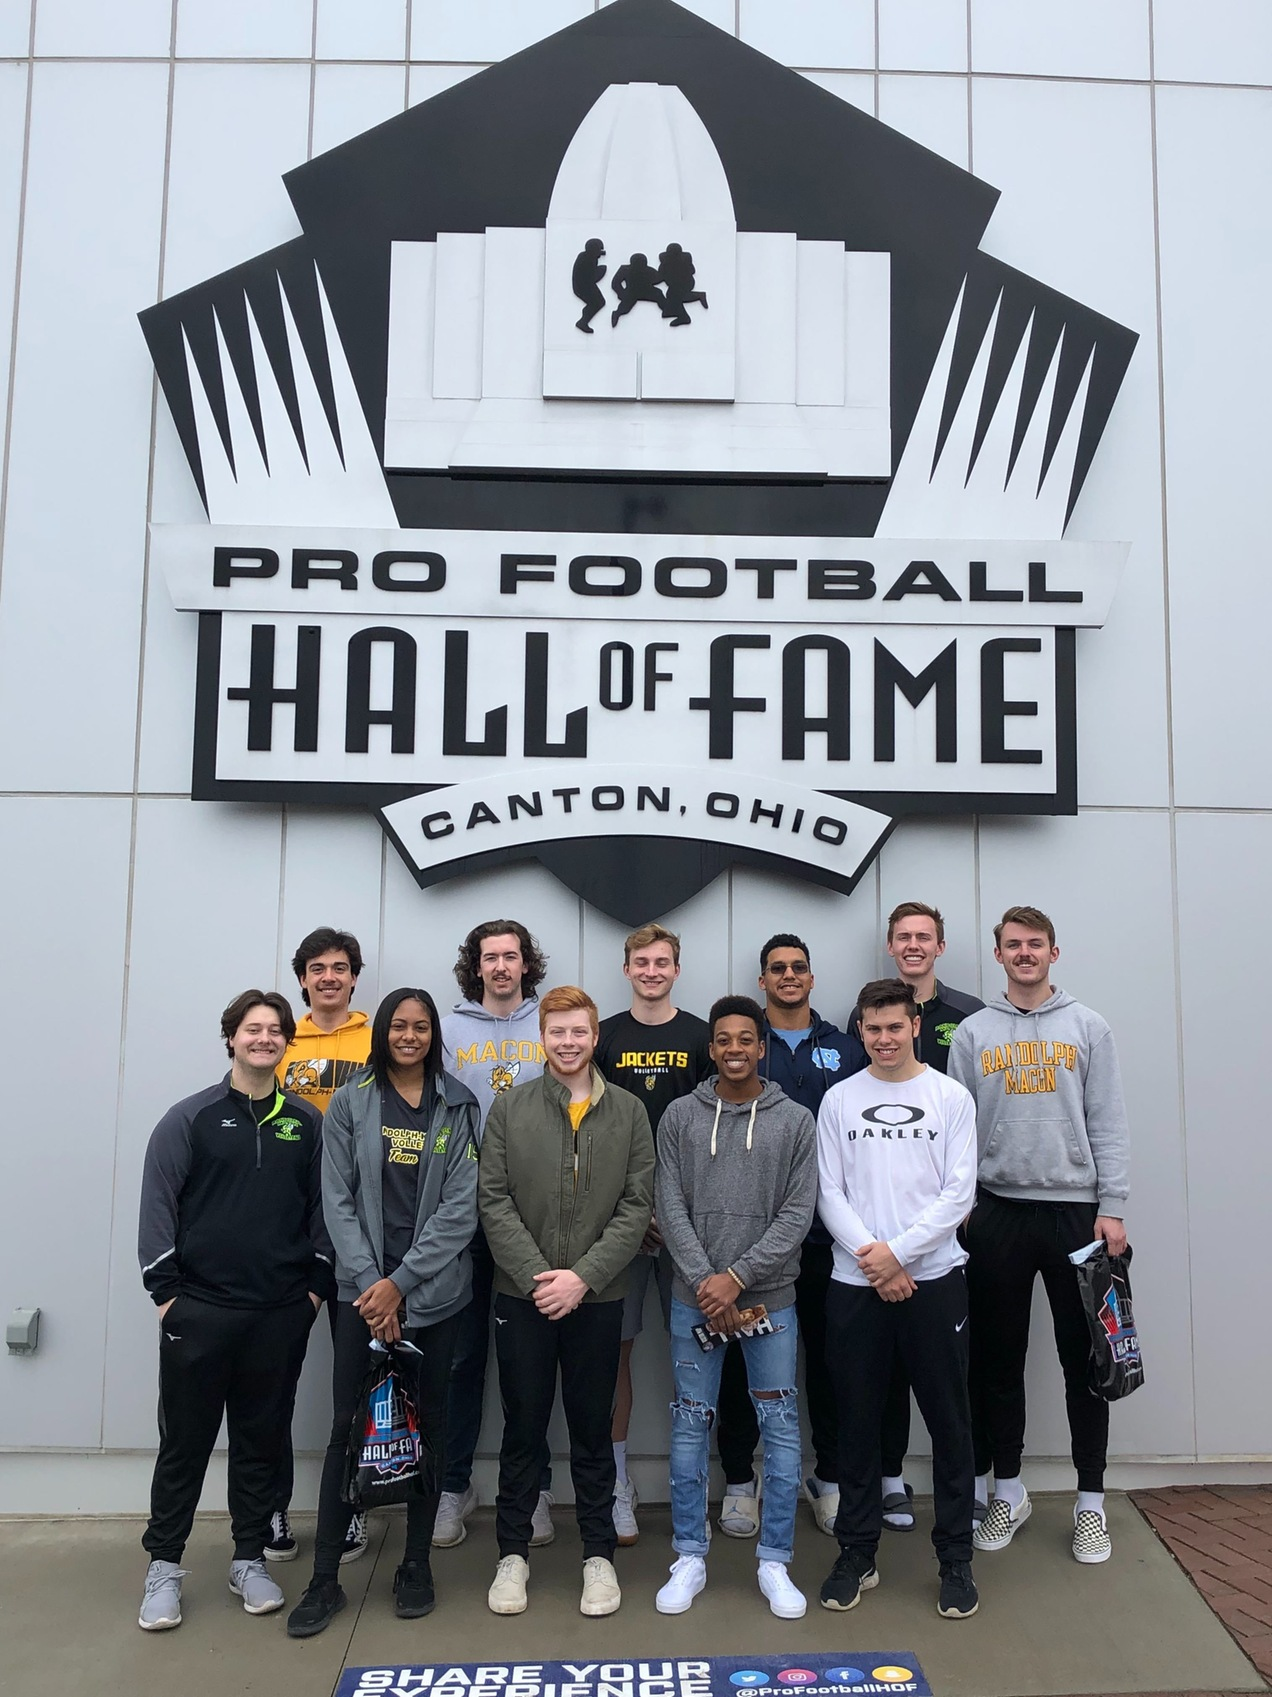 Team at pro football hall of fame